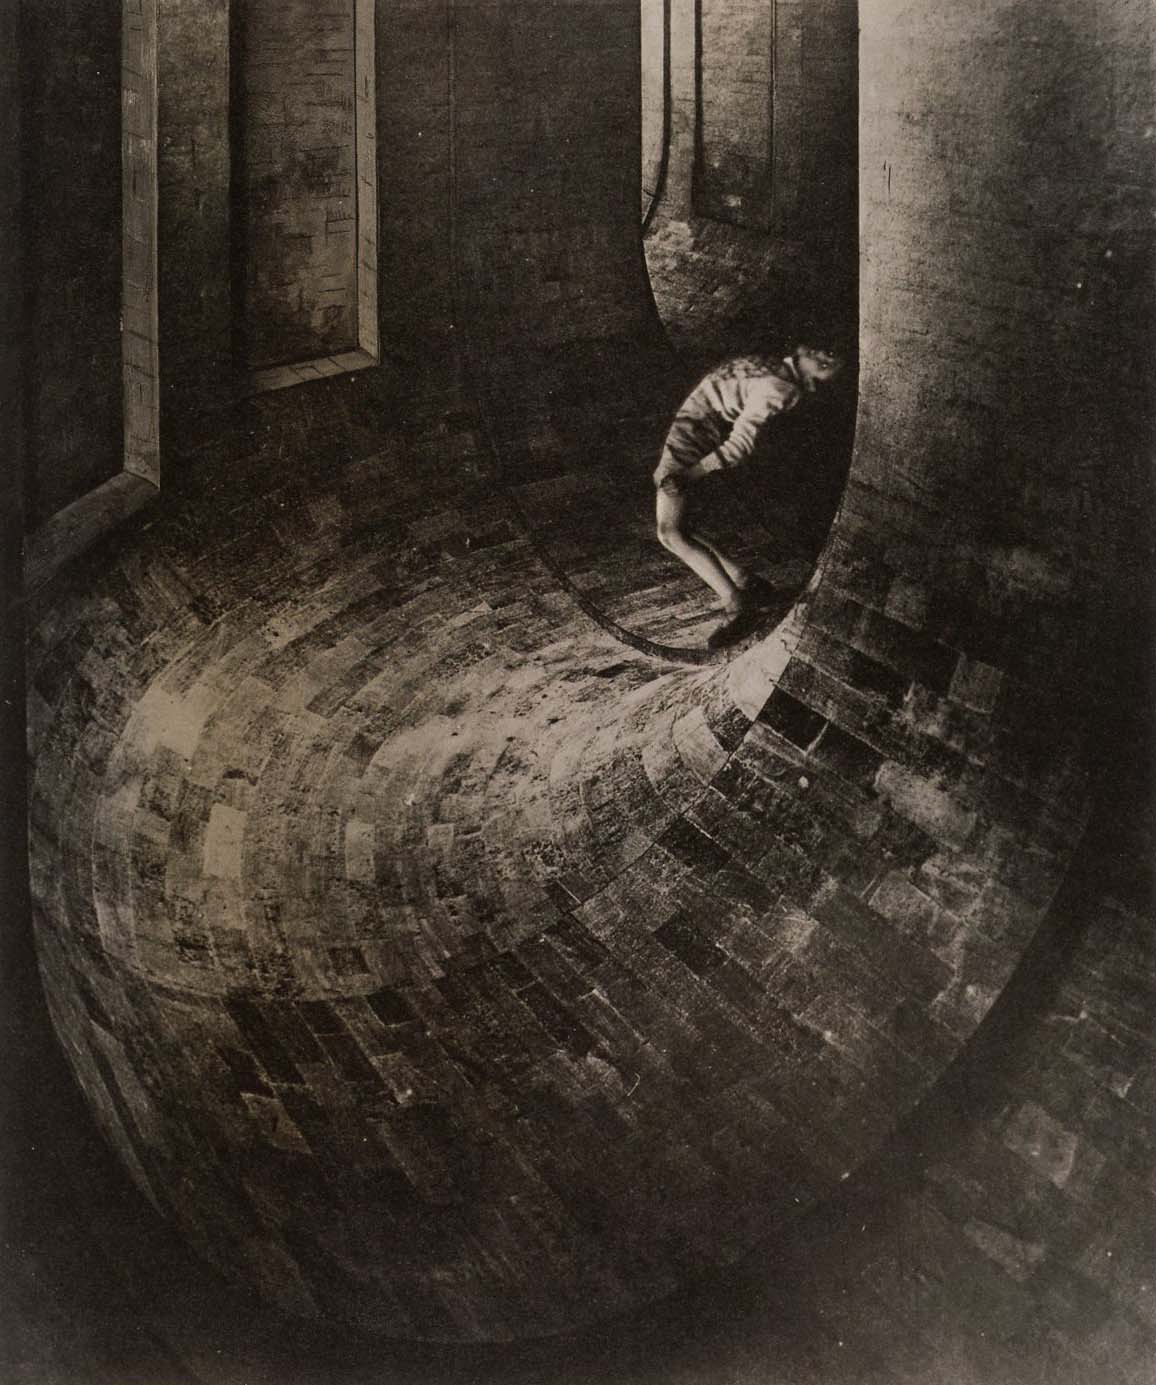 Exposure the simulator photographed by dora maar - Le photograph ...